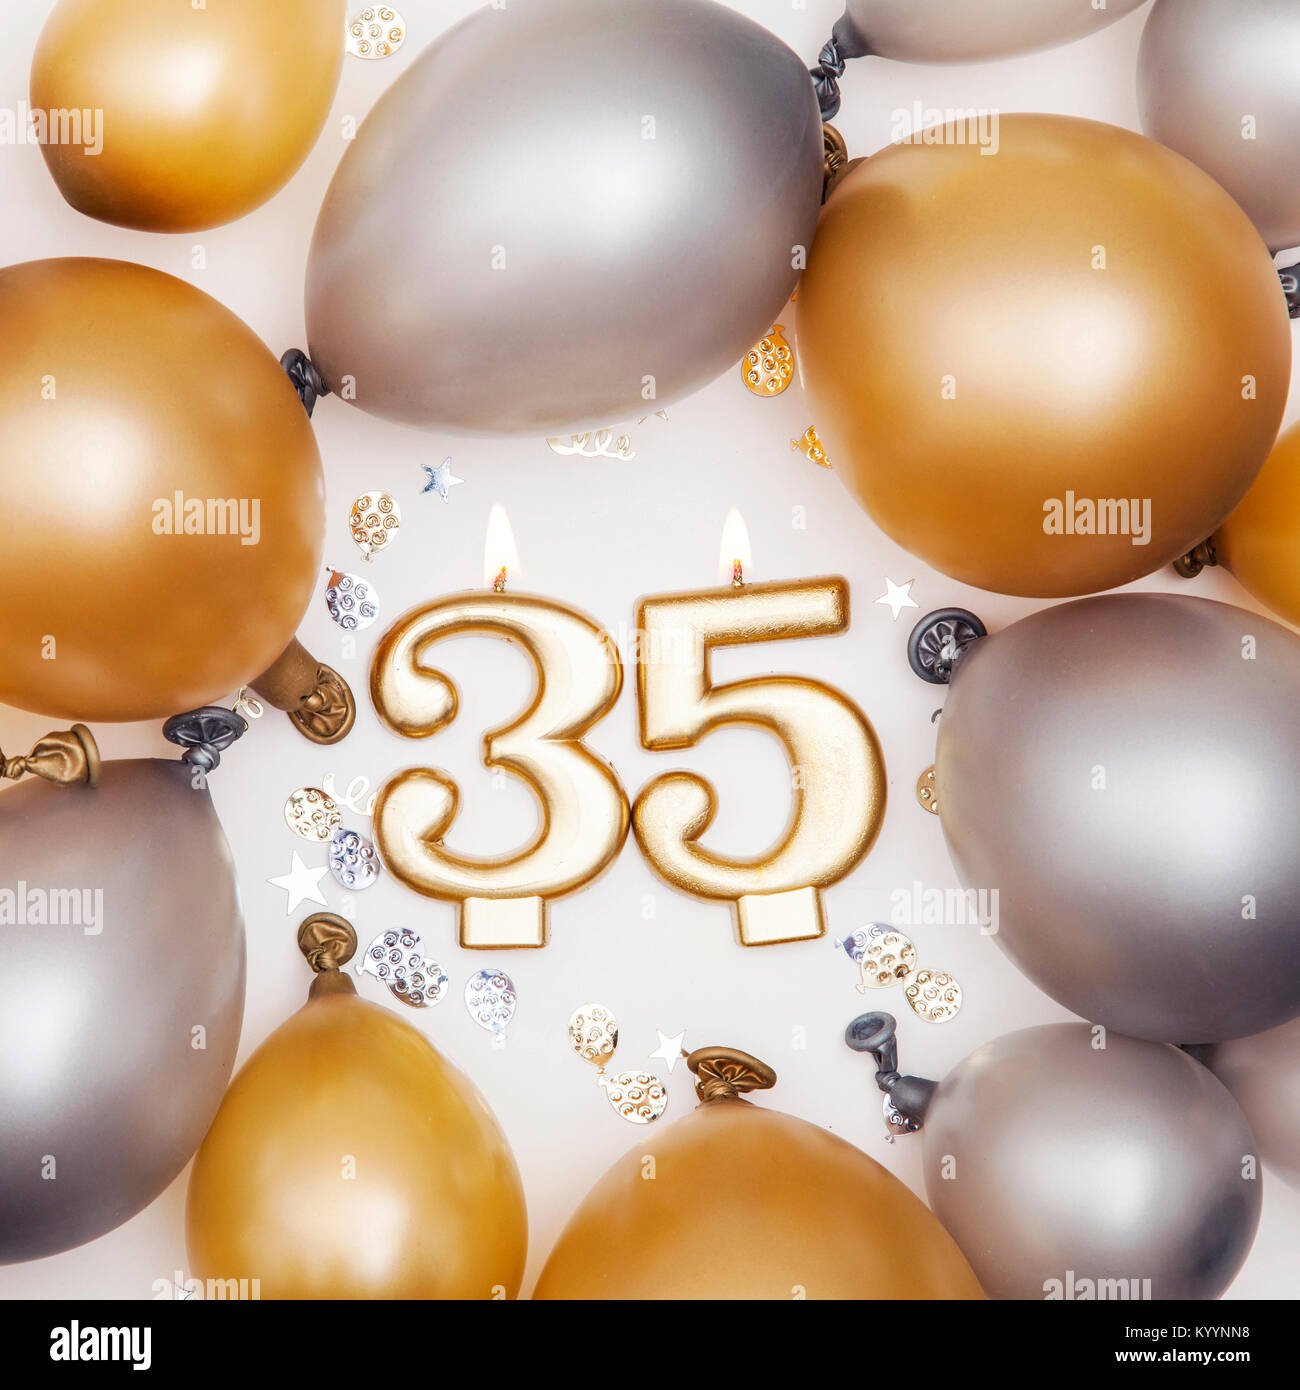 Birthday Celebration Number 35 Candle With Gold And Silver Balloons